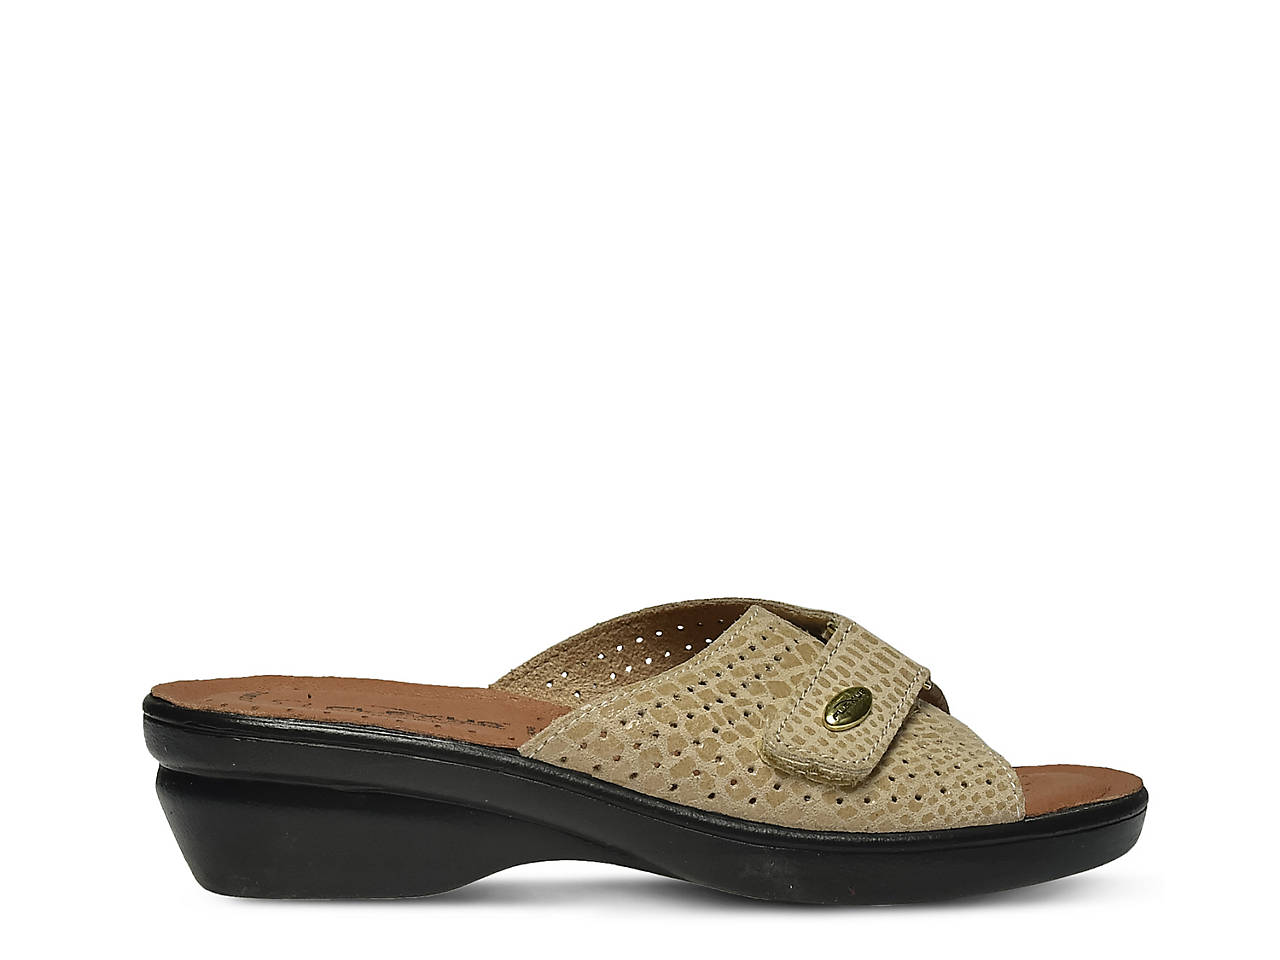 1f284372f47e Flexus by Spring Step Carrie Wedge Sandal Women s Shoes